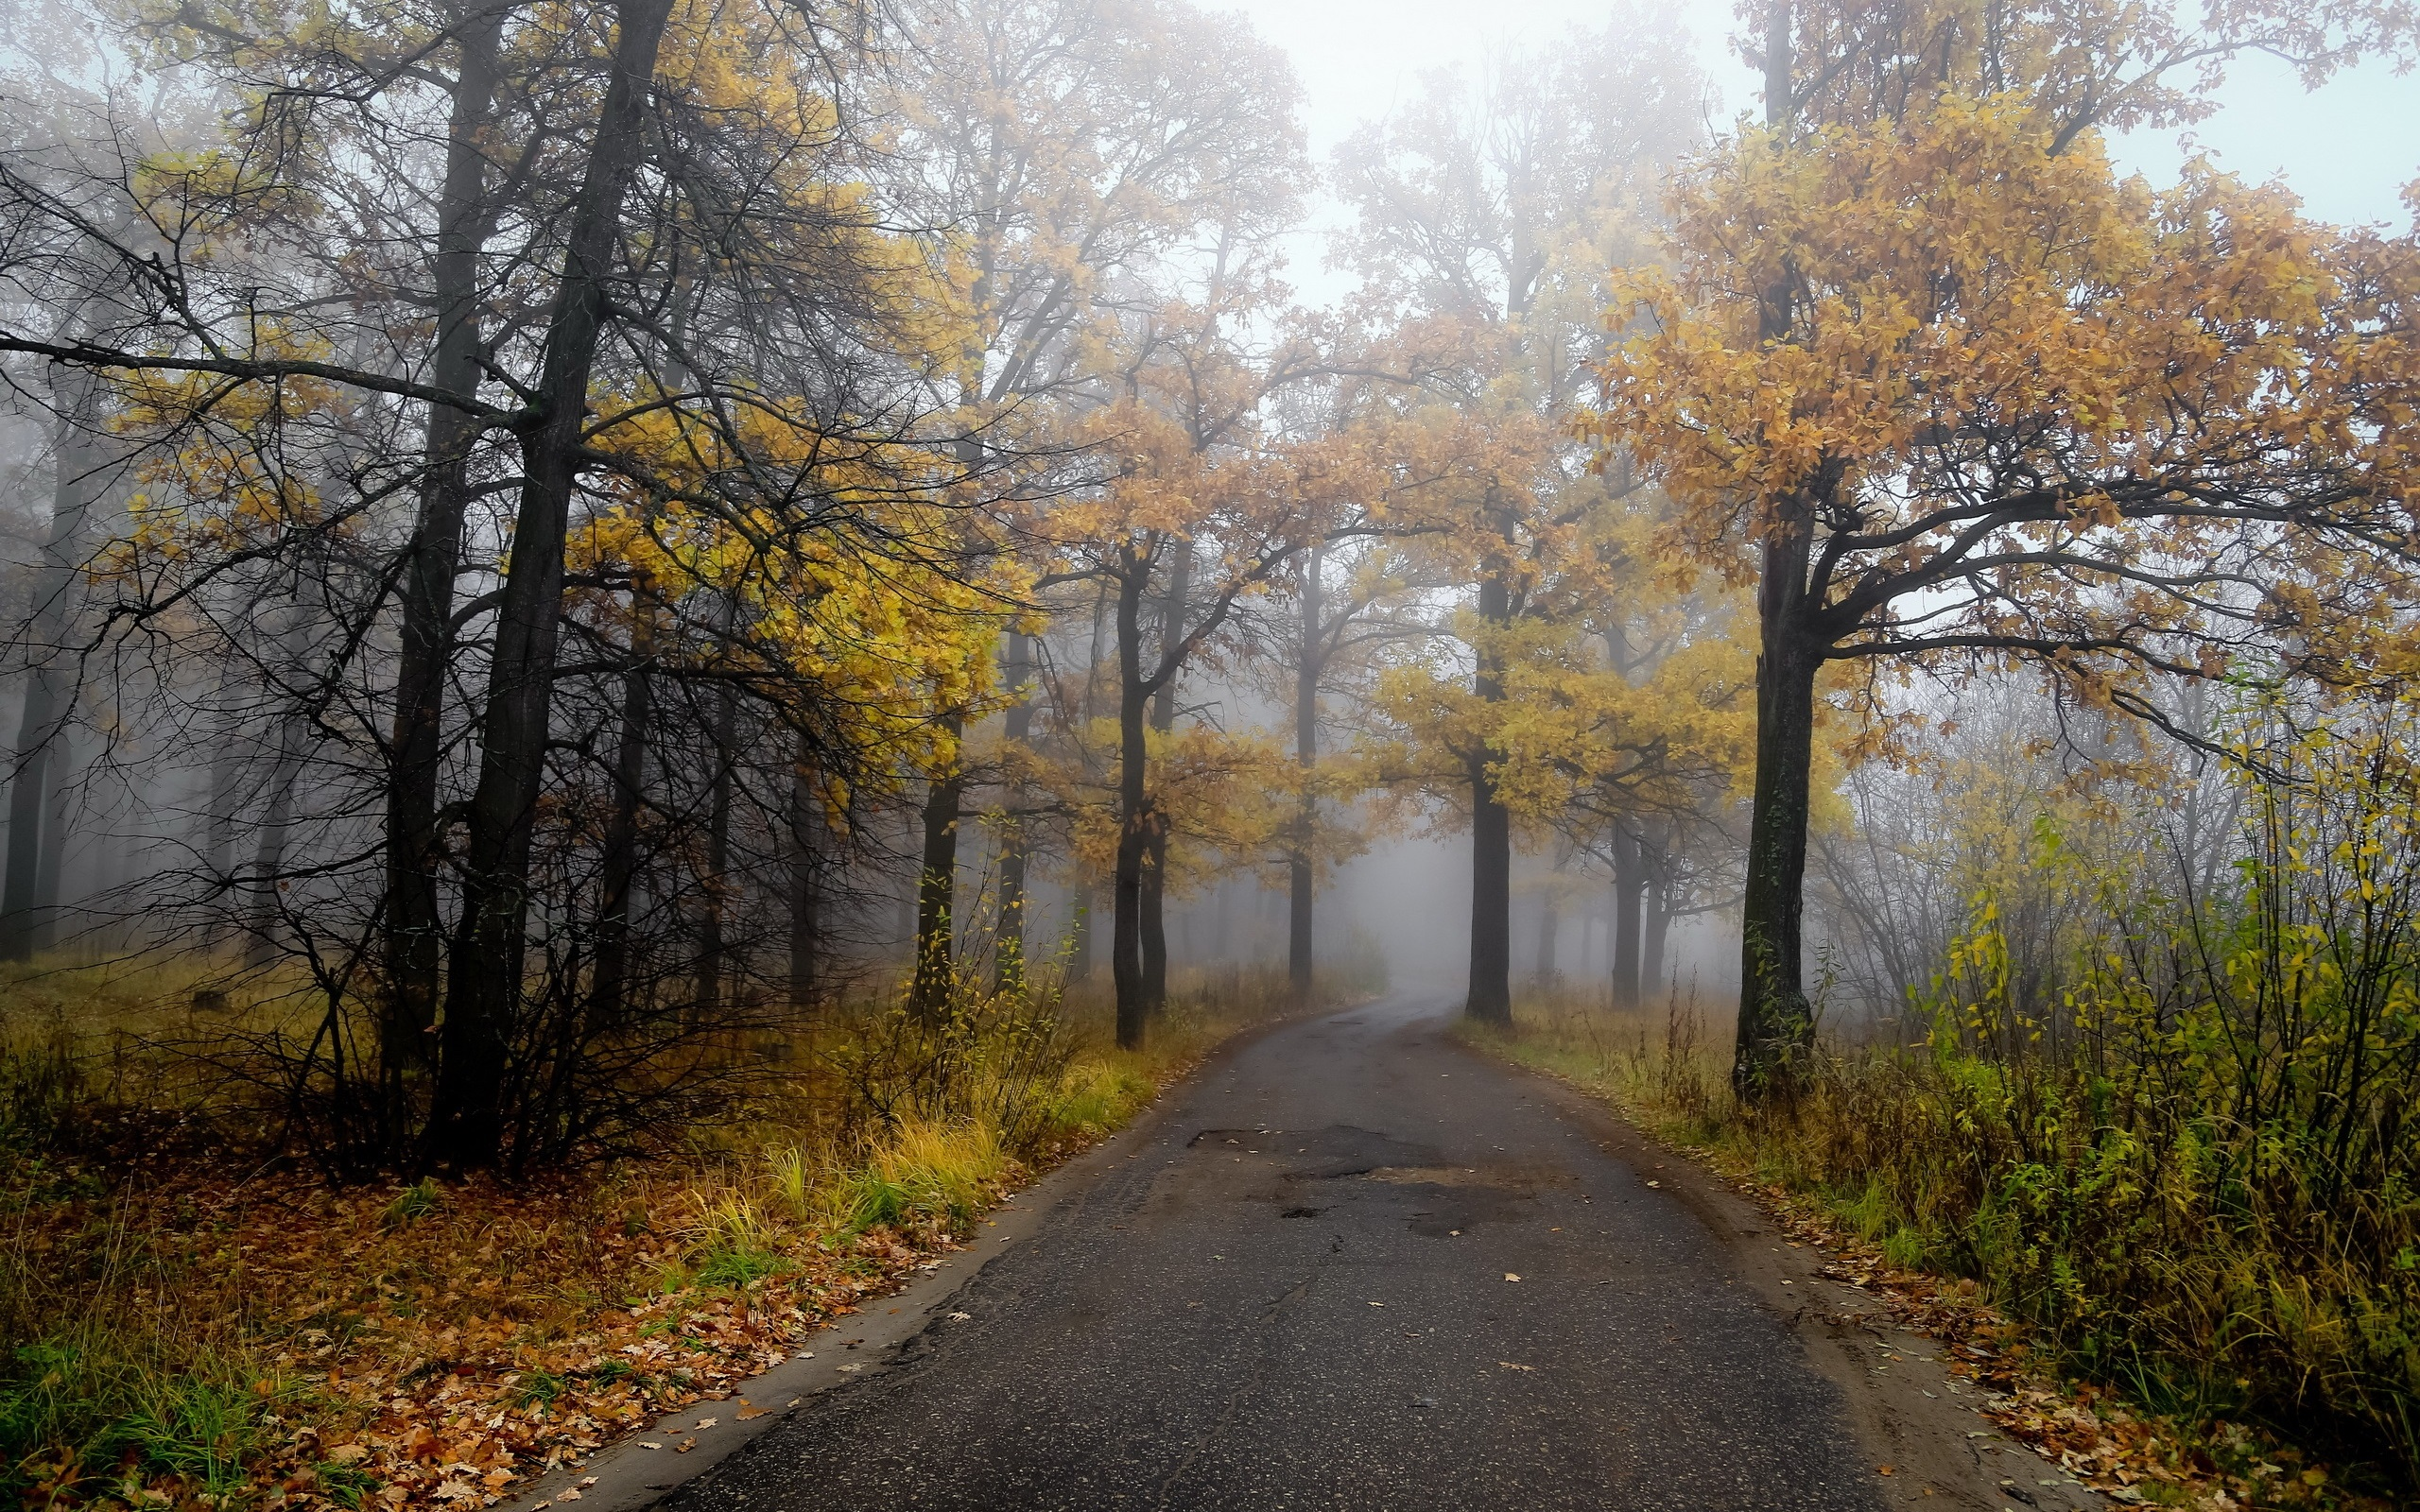 Wallpaper Anime Fall 2016 Morning Road Forest Autumn Fog Wallpaper Nature And